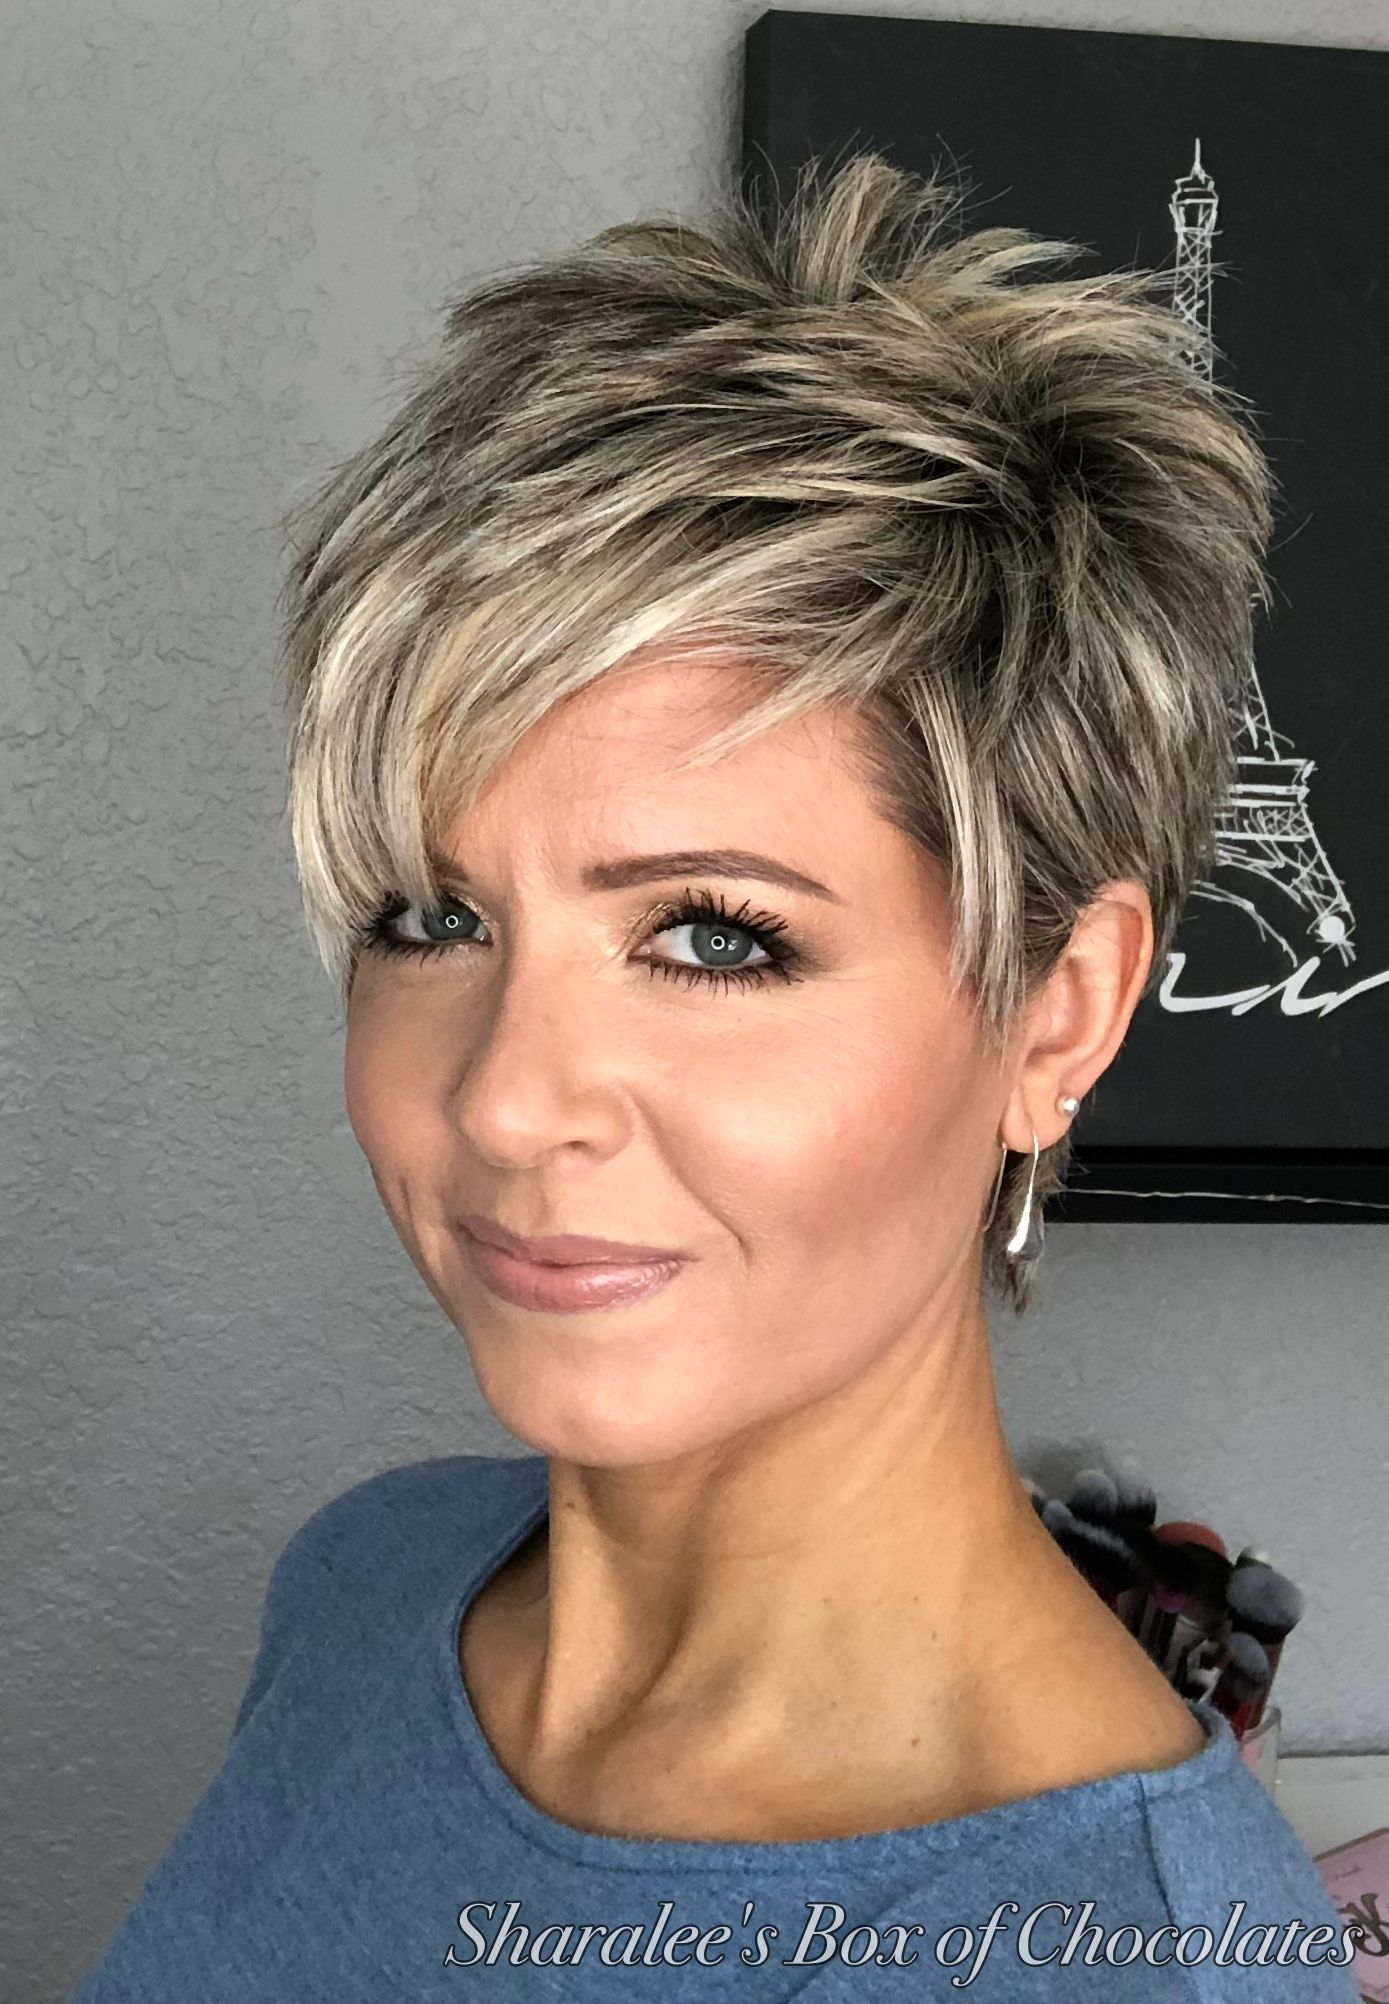 Längere Pixie Cut Styling-Optionen - Frisuren Ideen Frauen #shortlayeredhairstyles